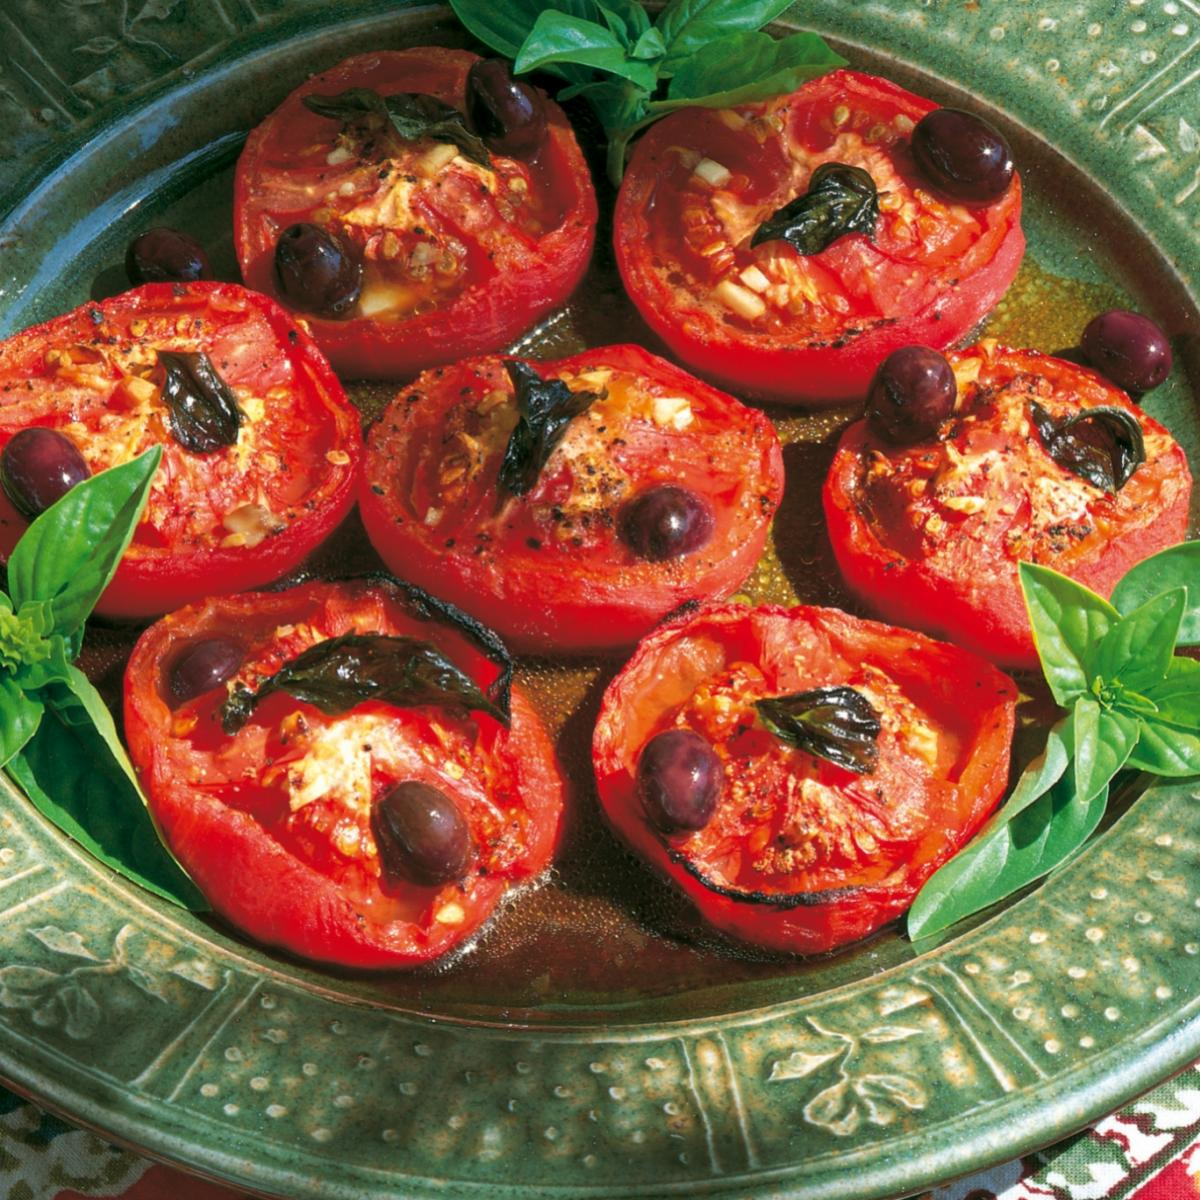 A picture of Delia's Roasted Tomato Salad recipe